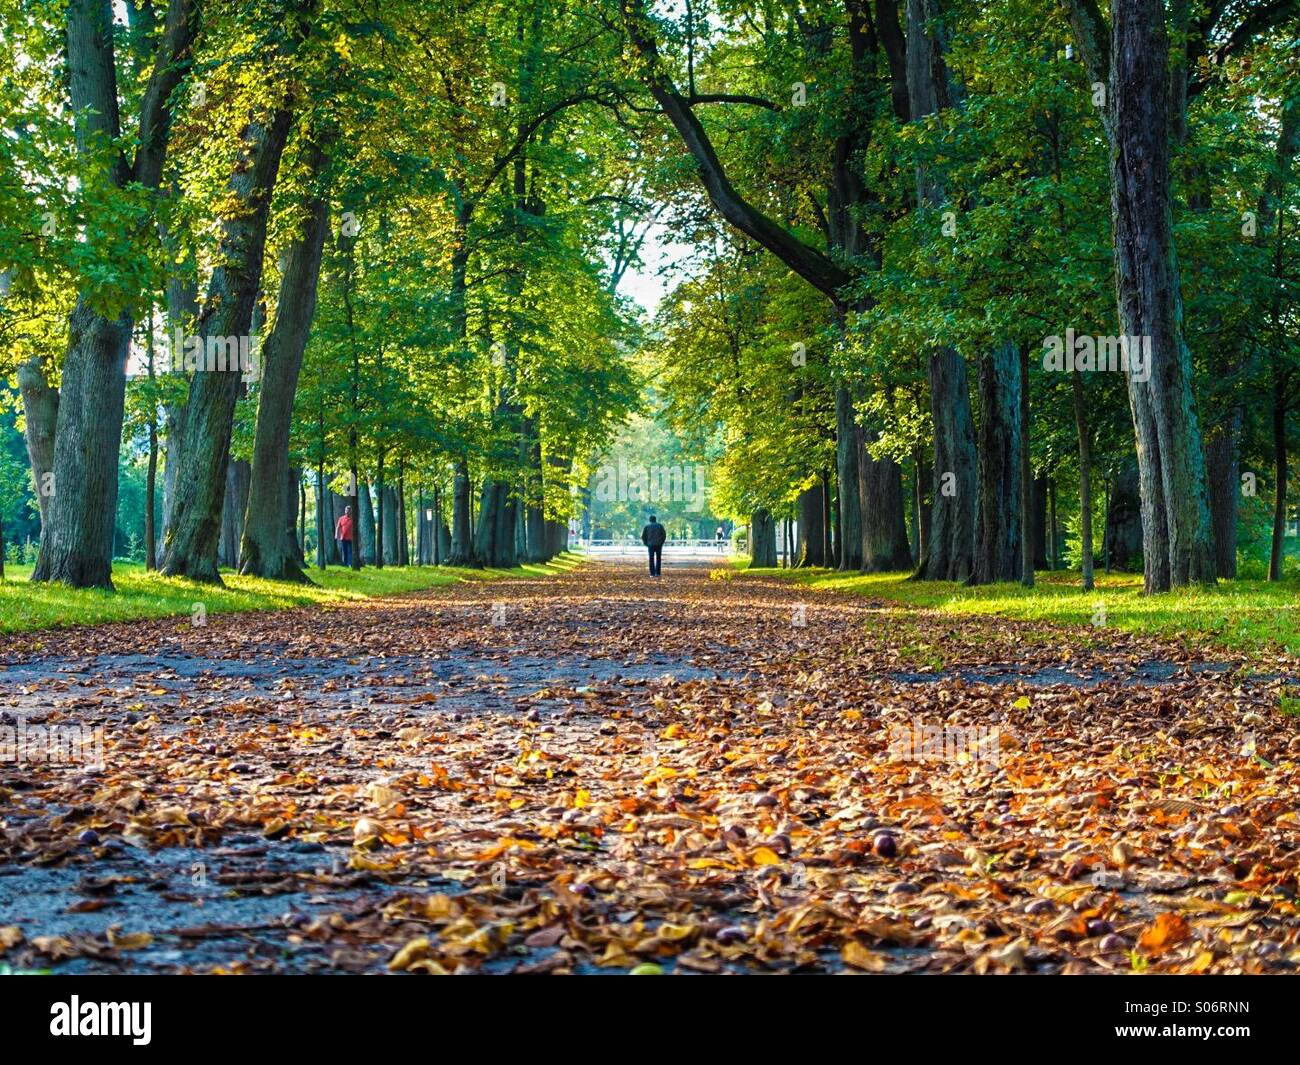 Fall colors in Germany,Gräflicher Park, Bad Driburg, Germany - Stock Image